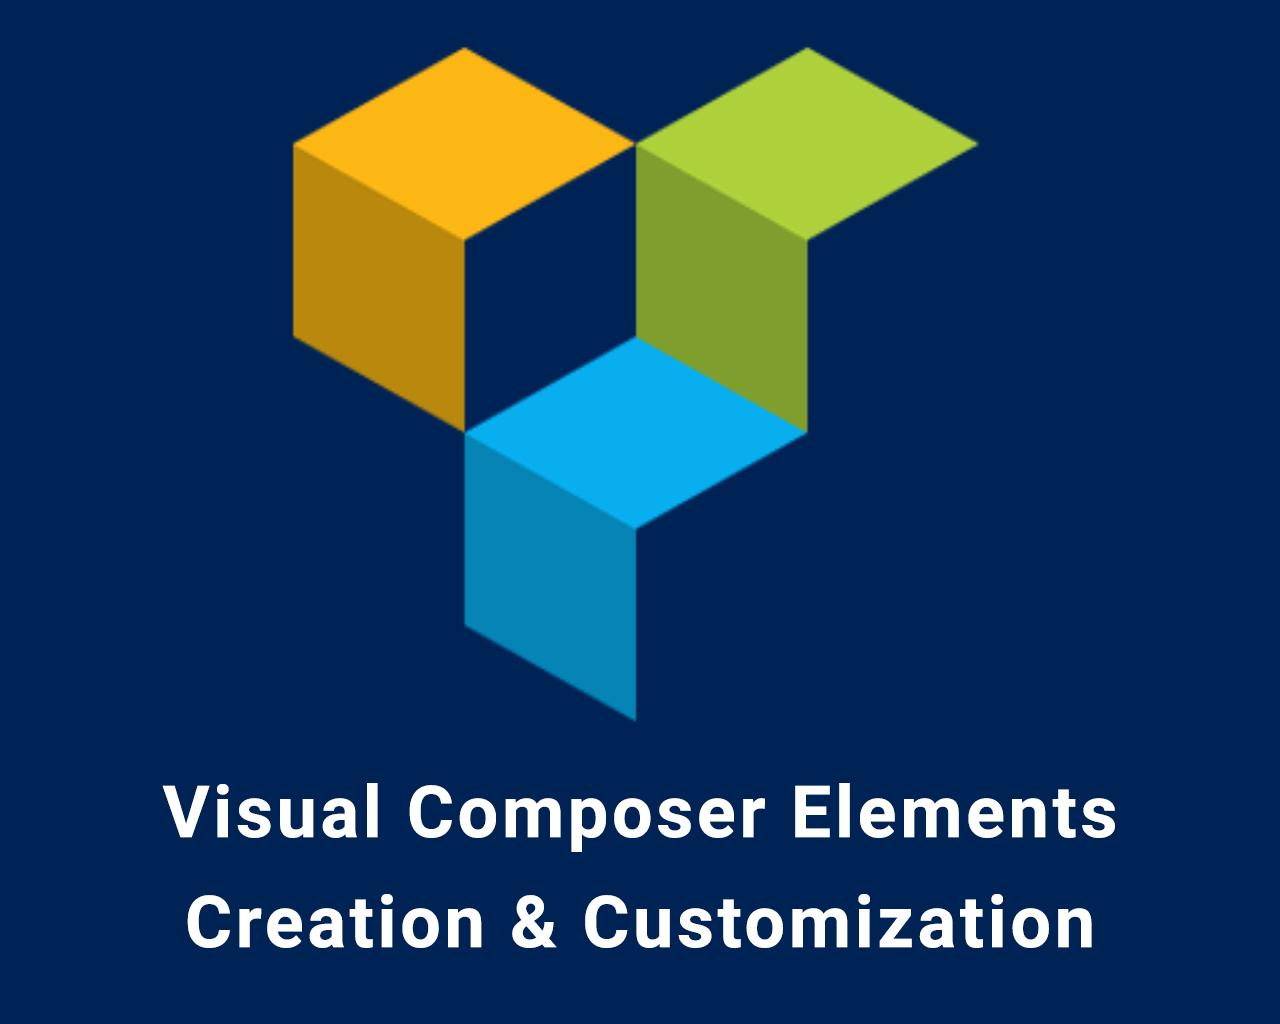 Visual Composer Elements Creation & Customization by ERROPiX - 103629